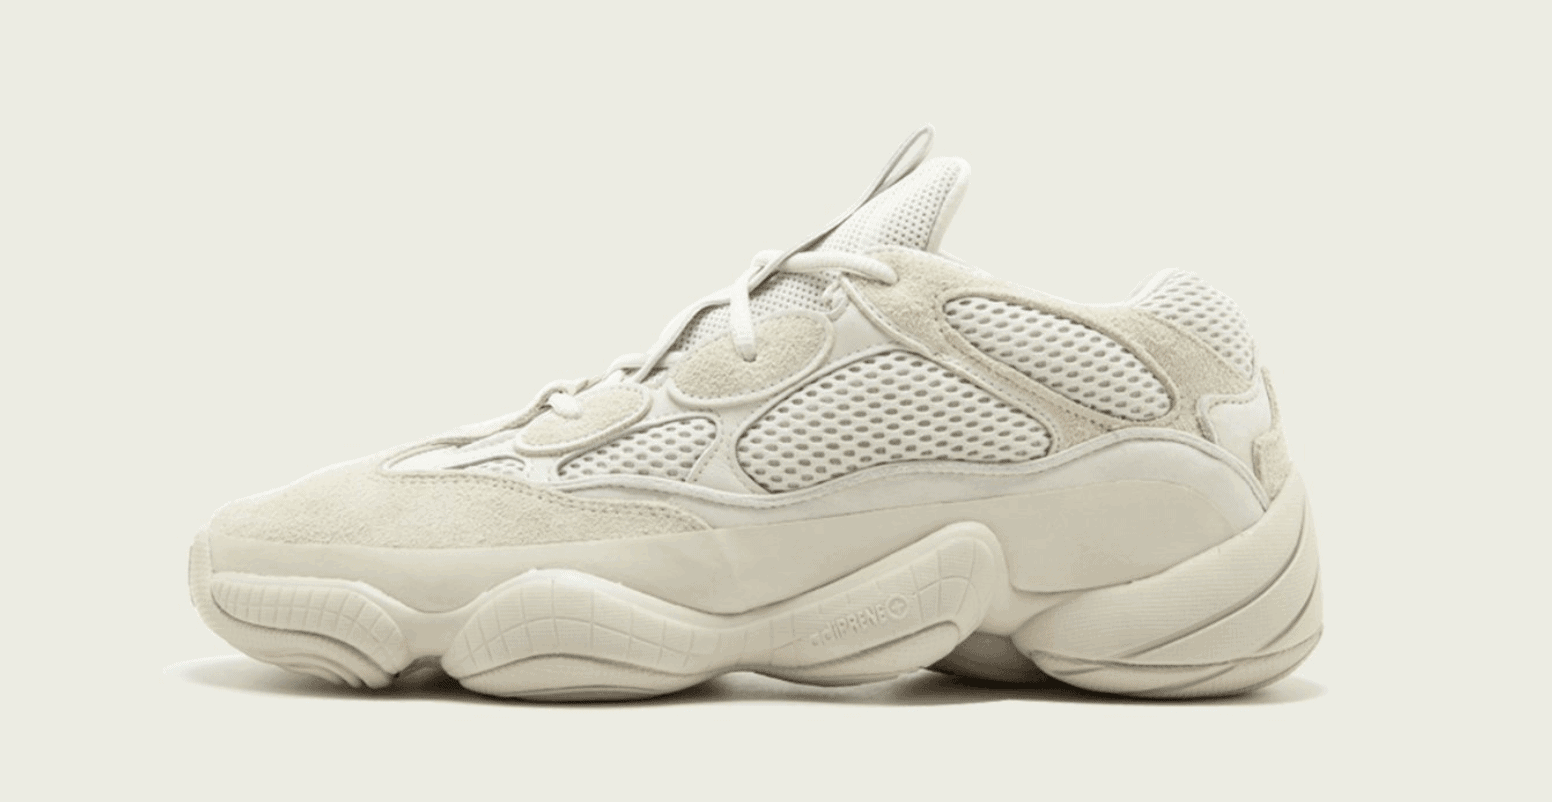 6069c8c0c adidas Yeezy Desert Rat 500. Release Date  February March 2018. Price    200. Color  Blush Blush Style Code  DB2908